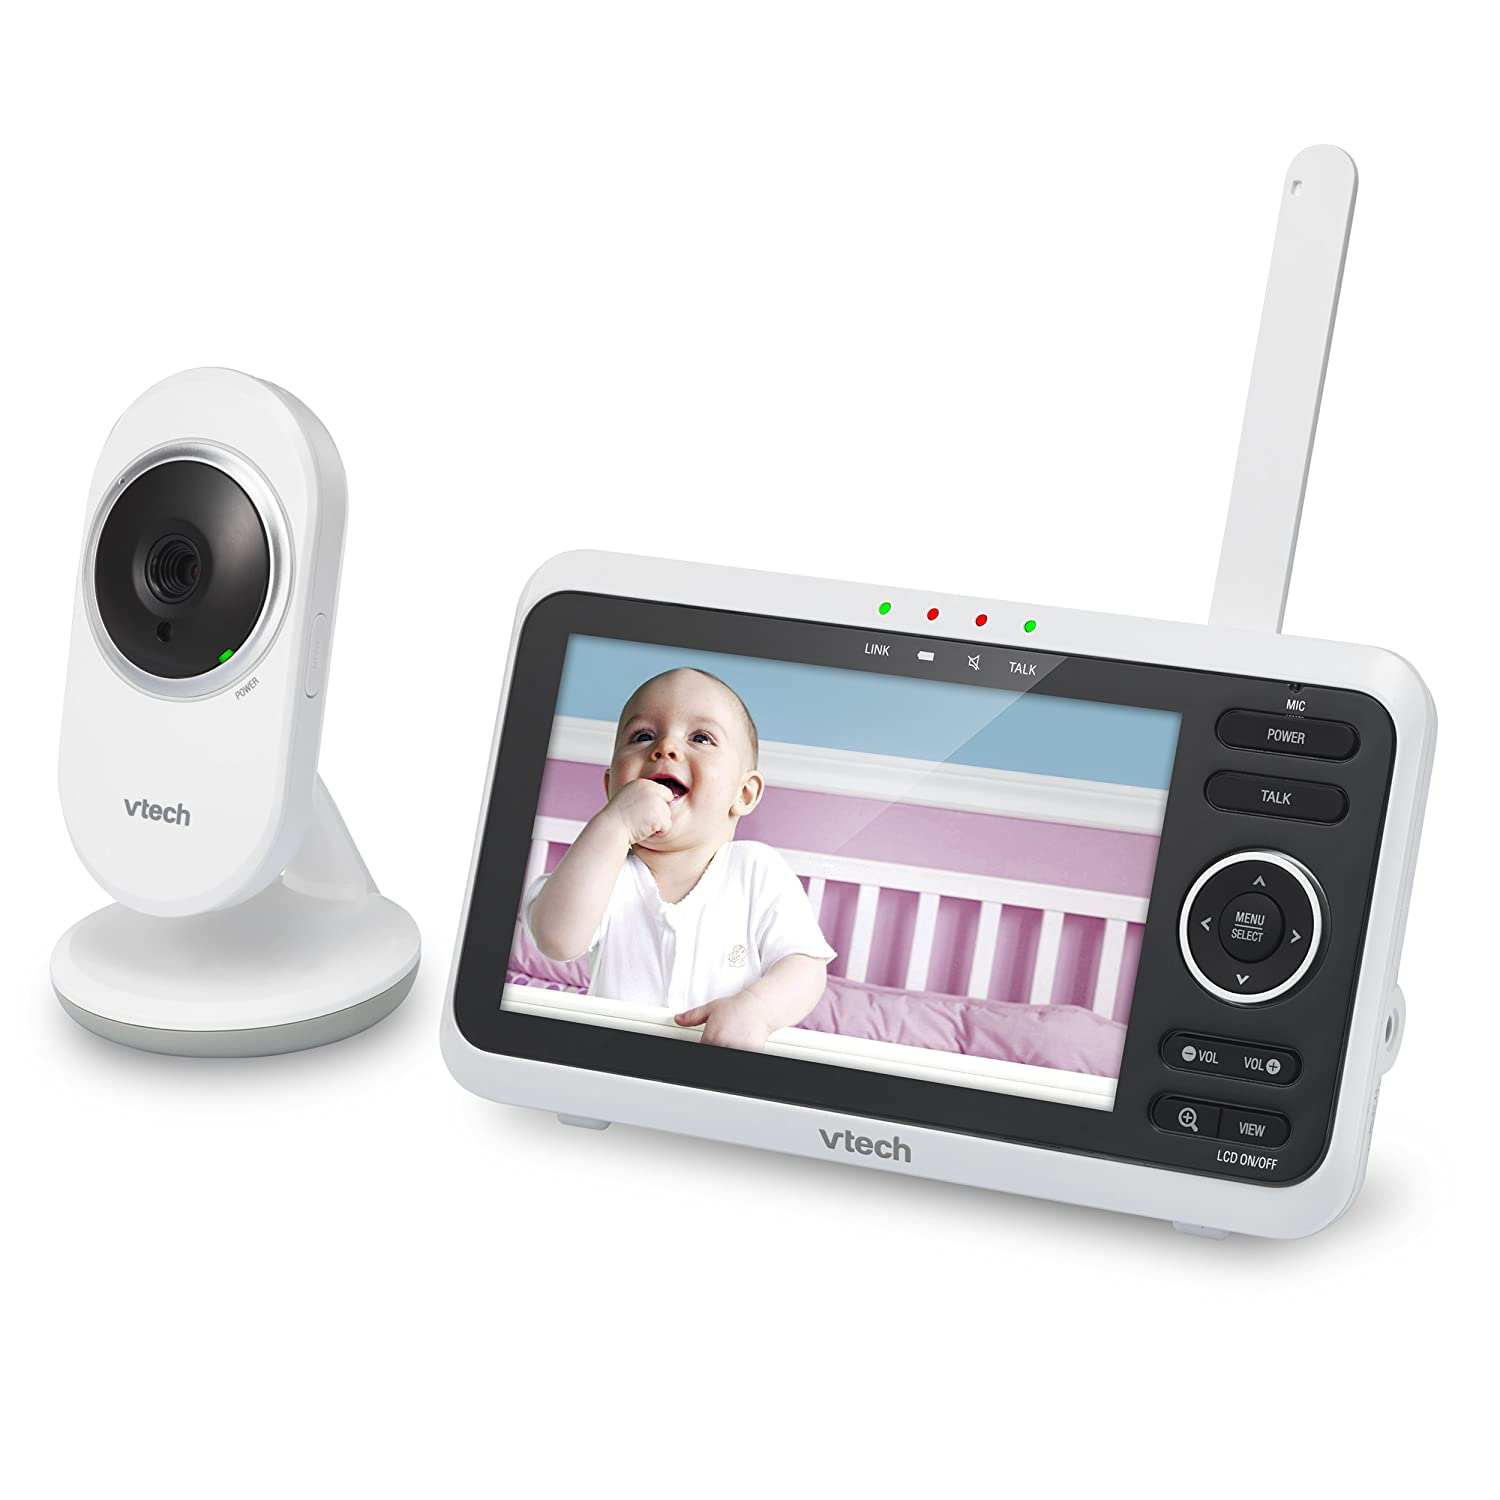 VTech VM350 Video Best Baby Monitor